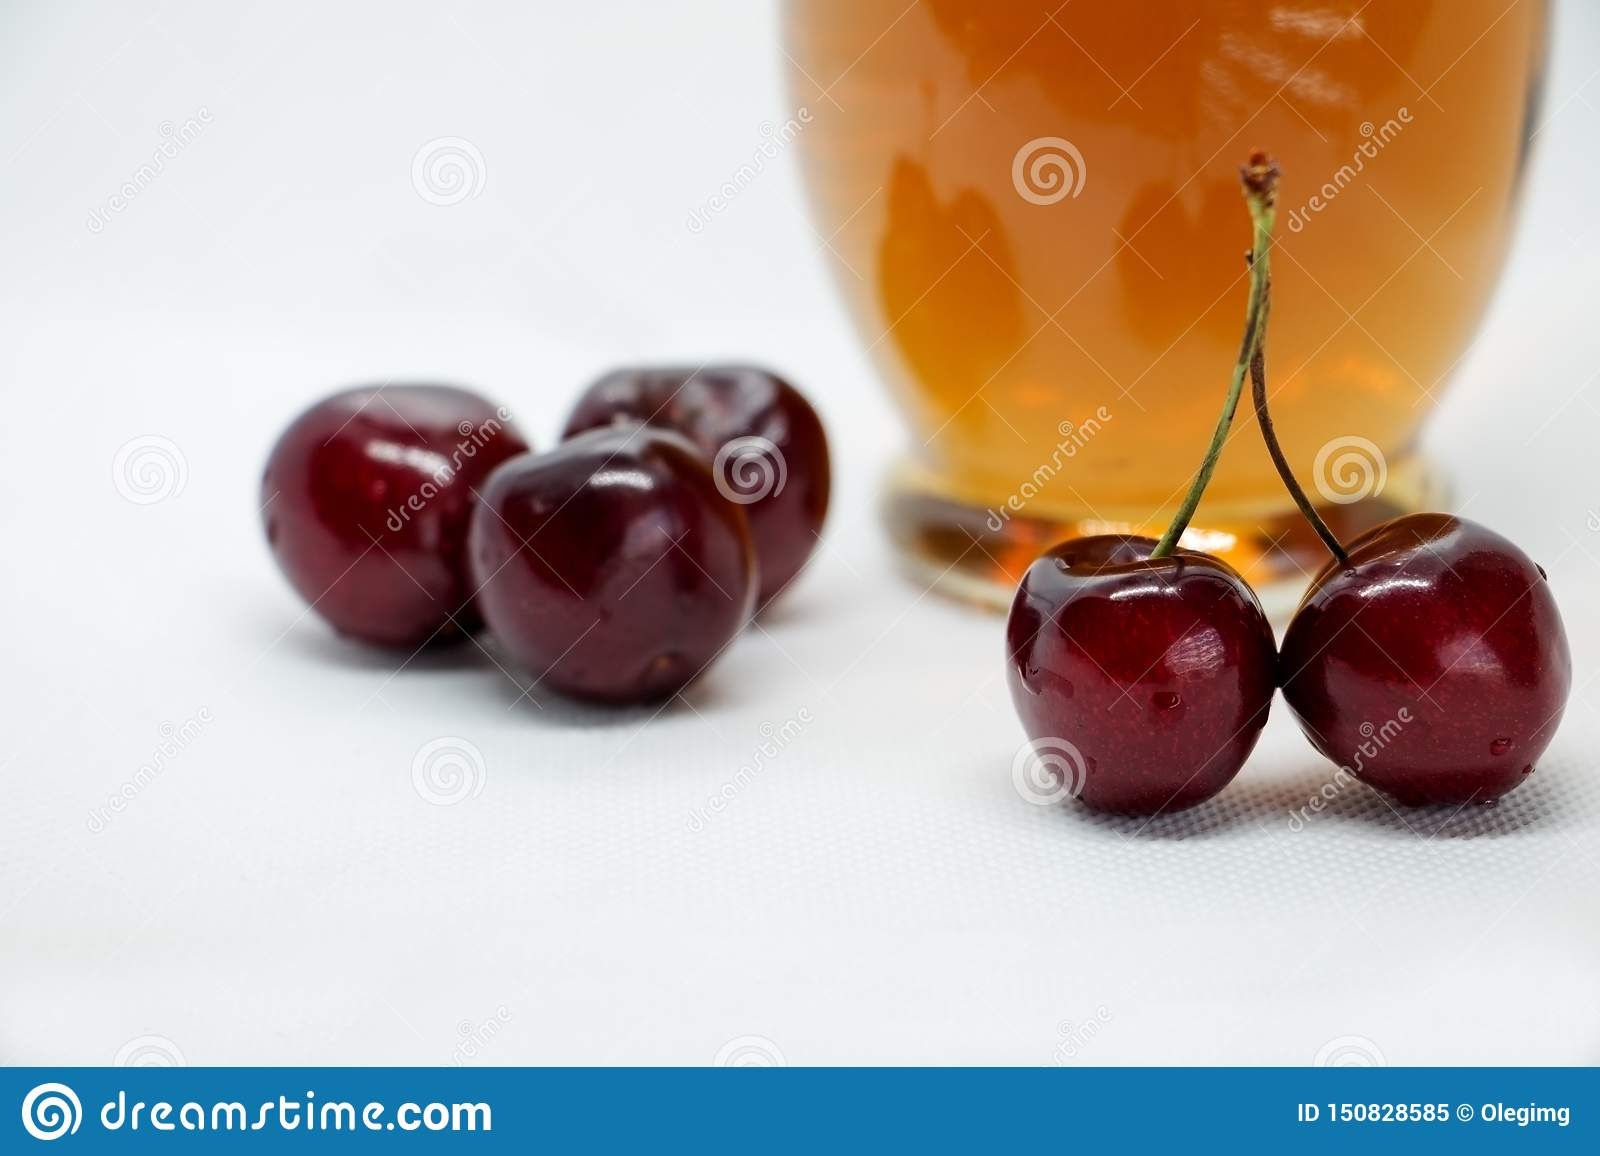 Bunches of sweet cherries and a bottle of juice